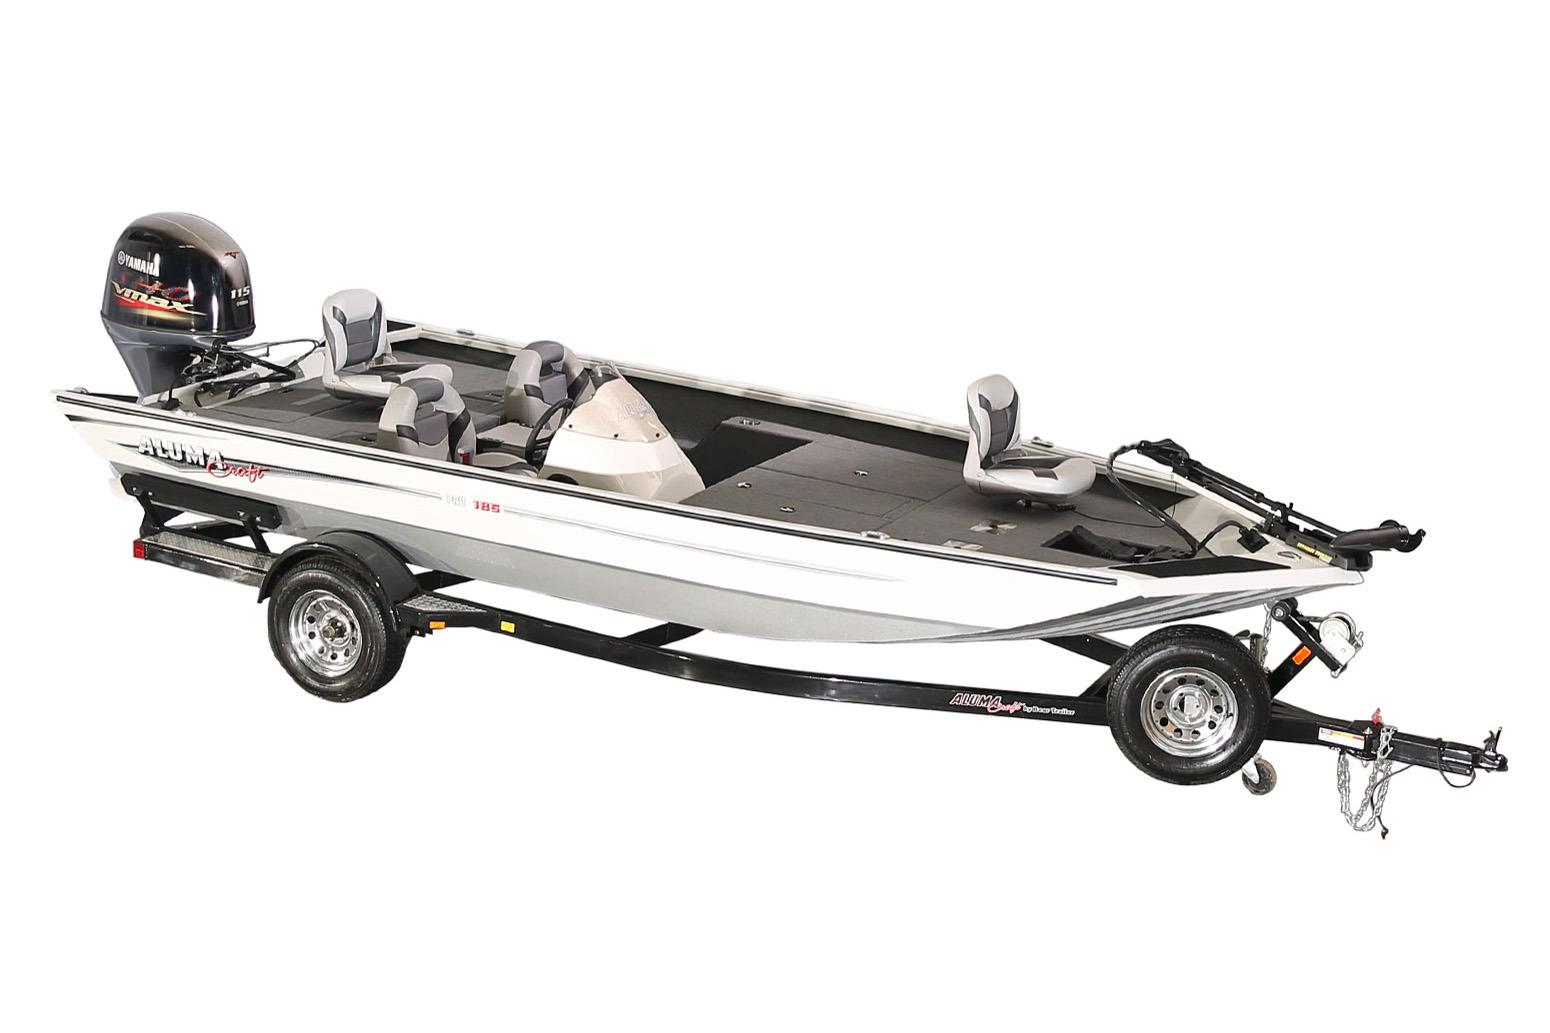 Power Boats Outboard Alumacraft Pro 185 2017 Newberry SC 2544ba39 339e 47ce 8227 A197001ddb7aG moreover Catawba County together with 1335654158 Best Bail Bonds Llc together with Map Of C  Lejeune 200491 00 27 04 also Kentucky Free Map 339. on south carolina road map